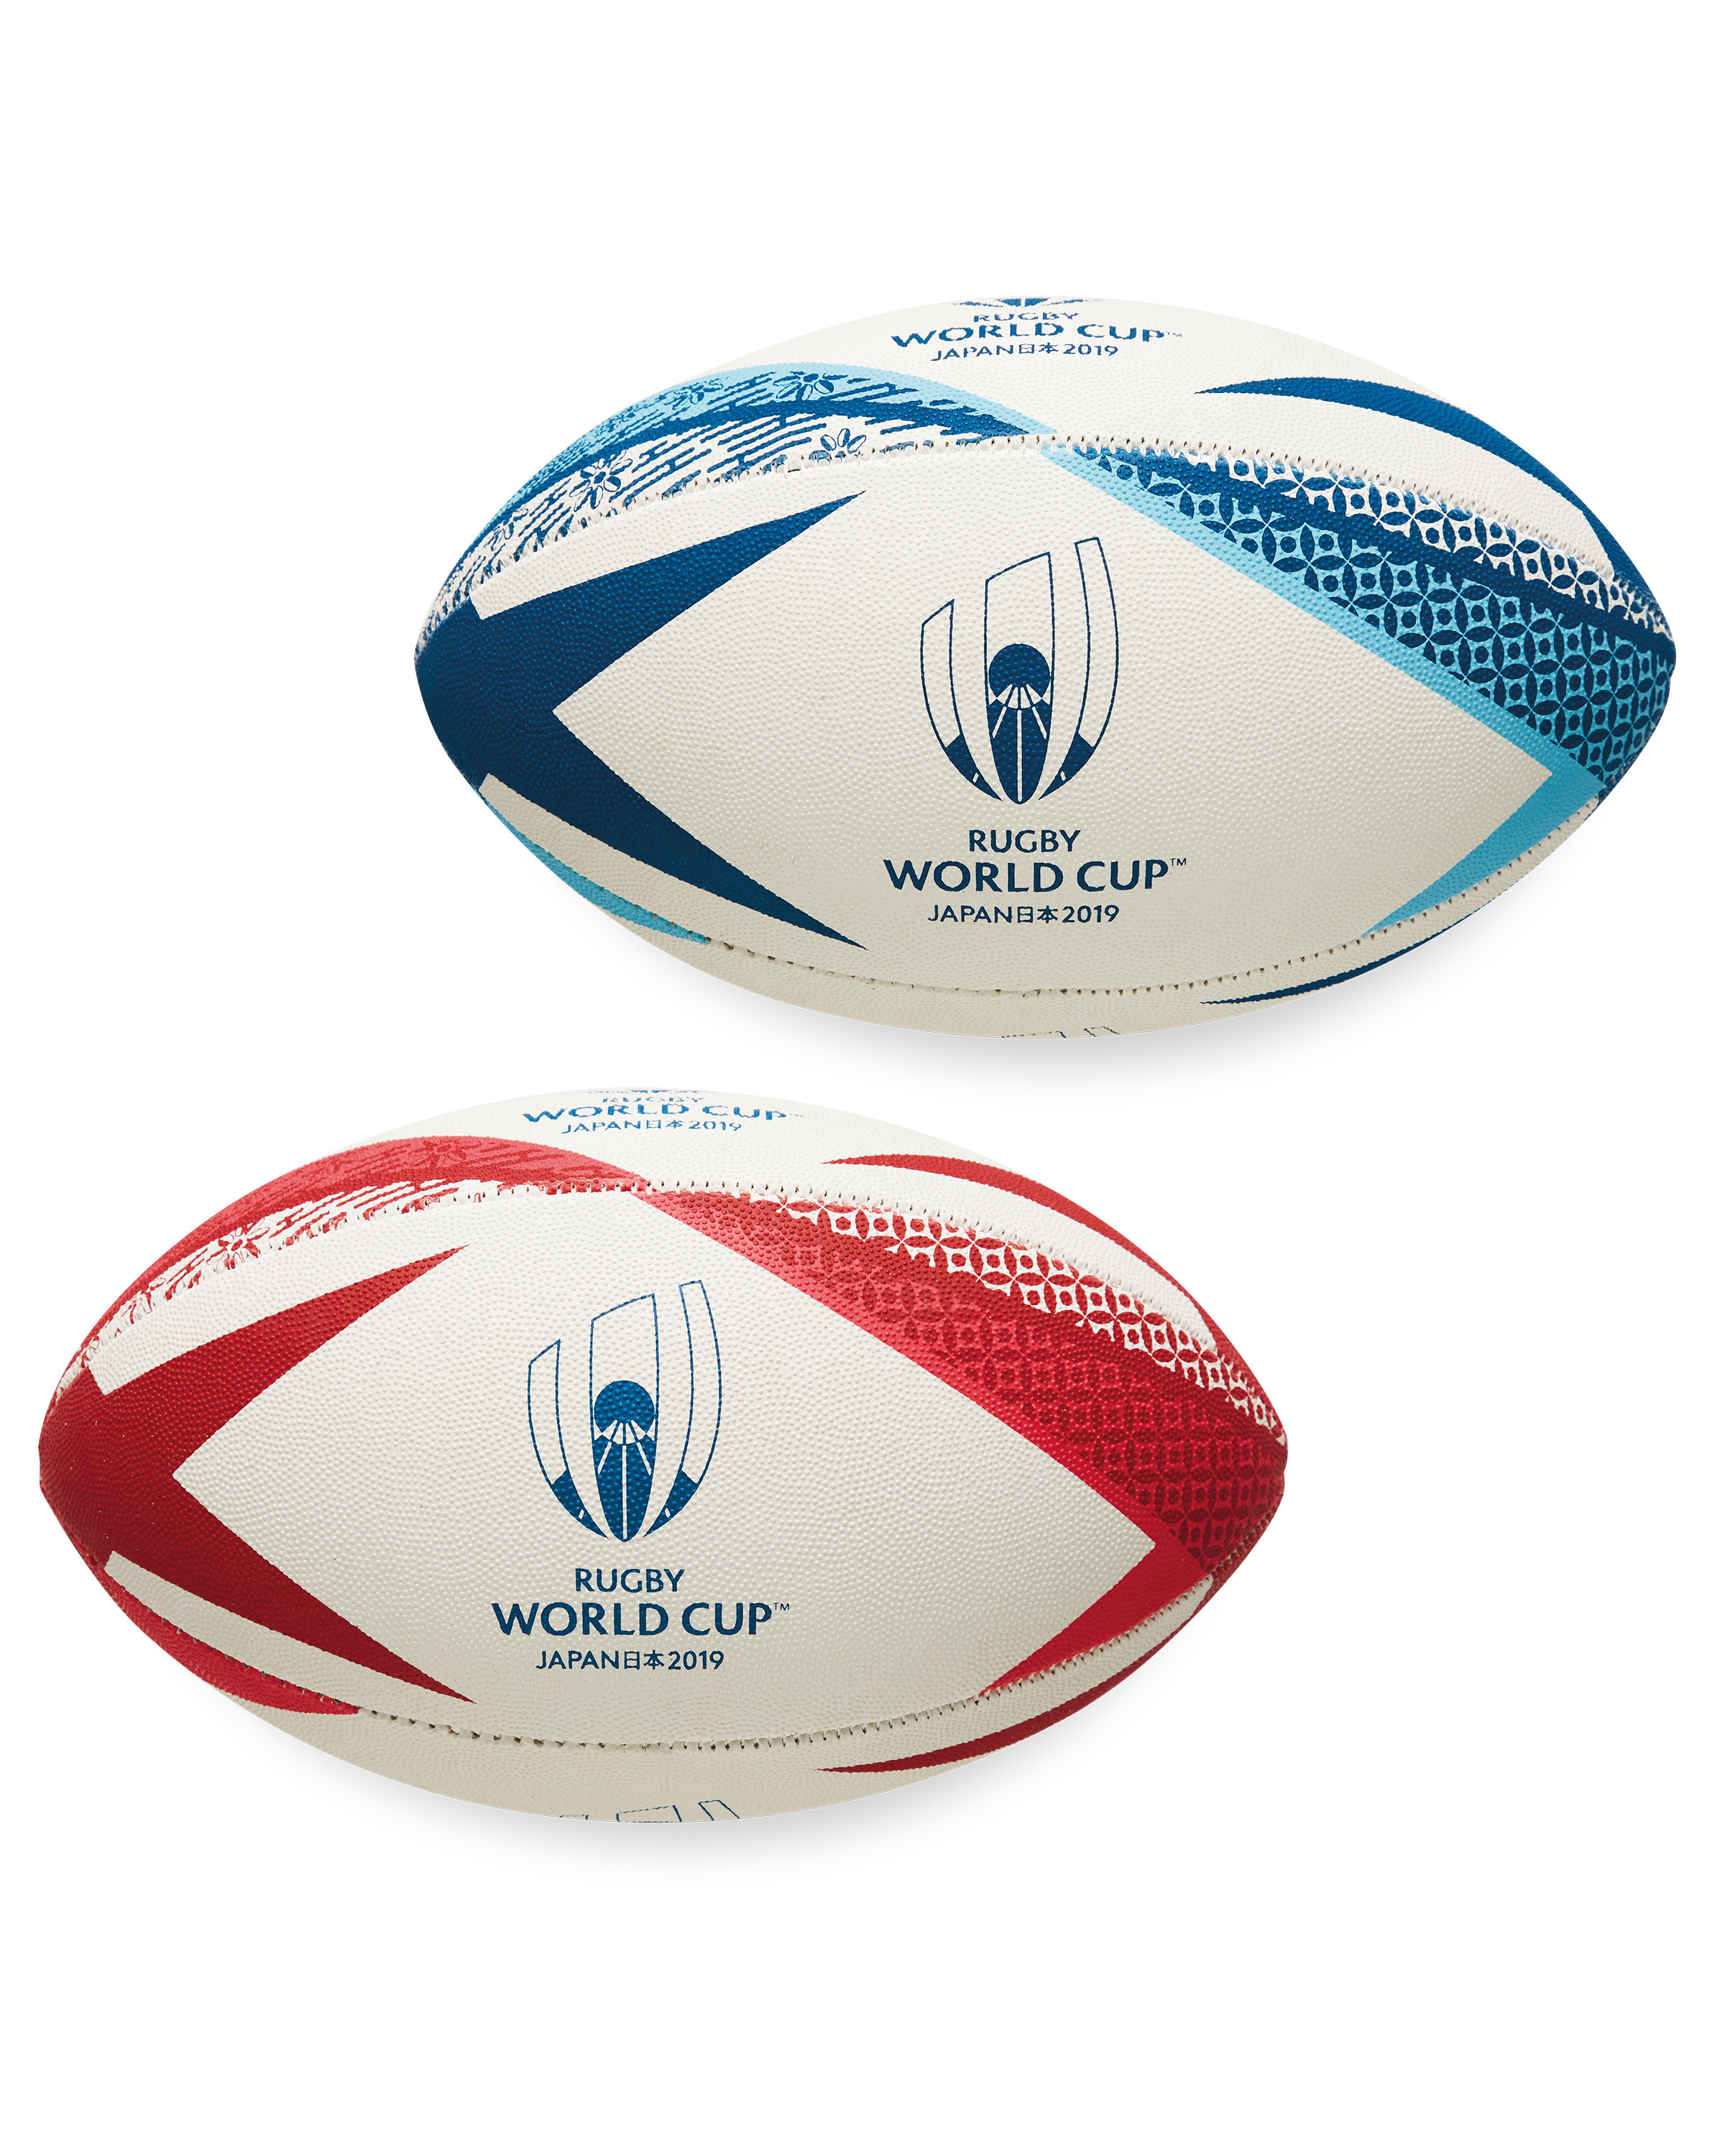 Official Rugby World Cup Midi Ball - ALDI UK